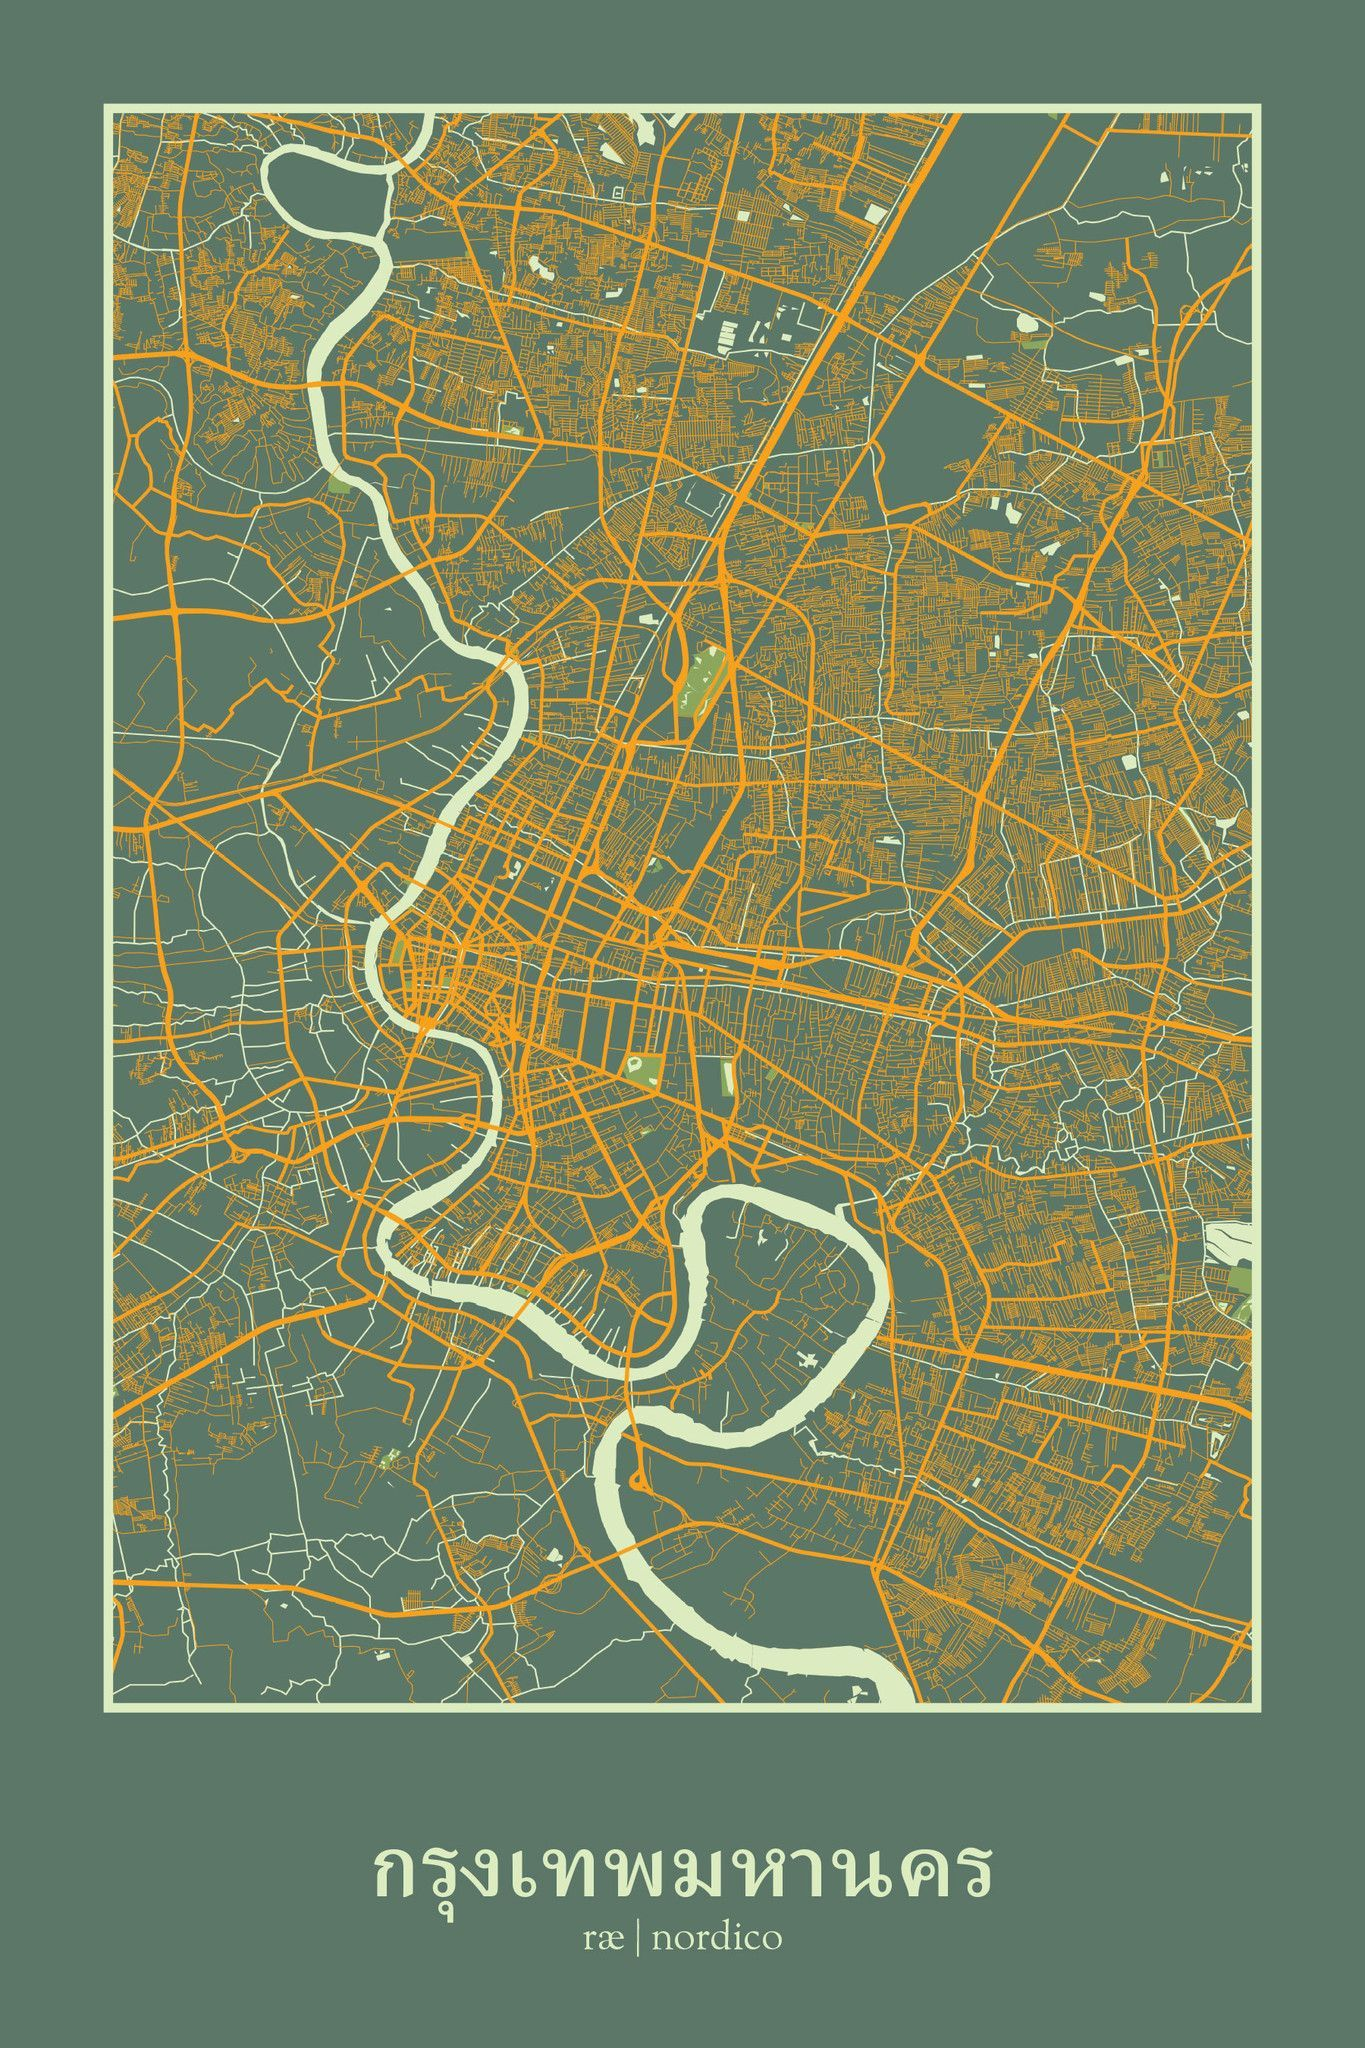 Bangkok thailand map print by rae nordico stylised city maps bangkok thailand map print by rae nordico stylised city maps bangkok the most visited city and the hottest malvernweather Image collections